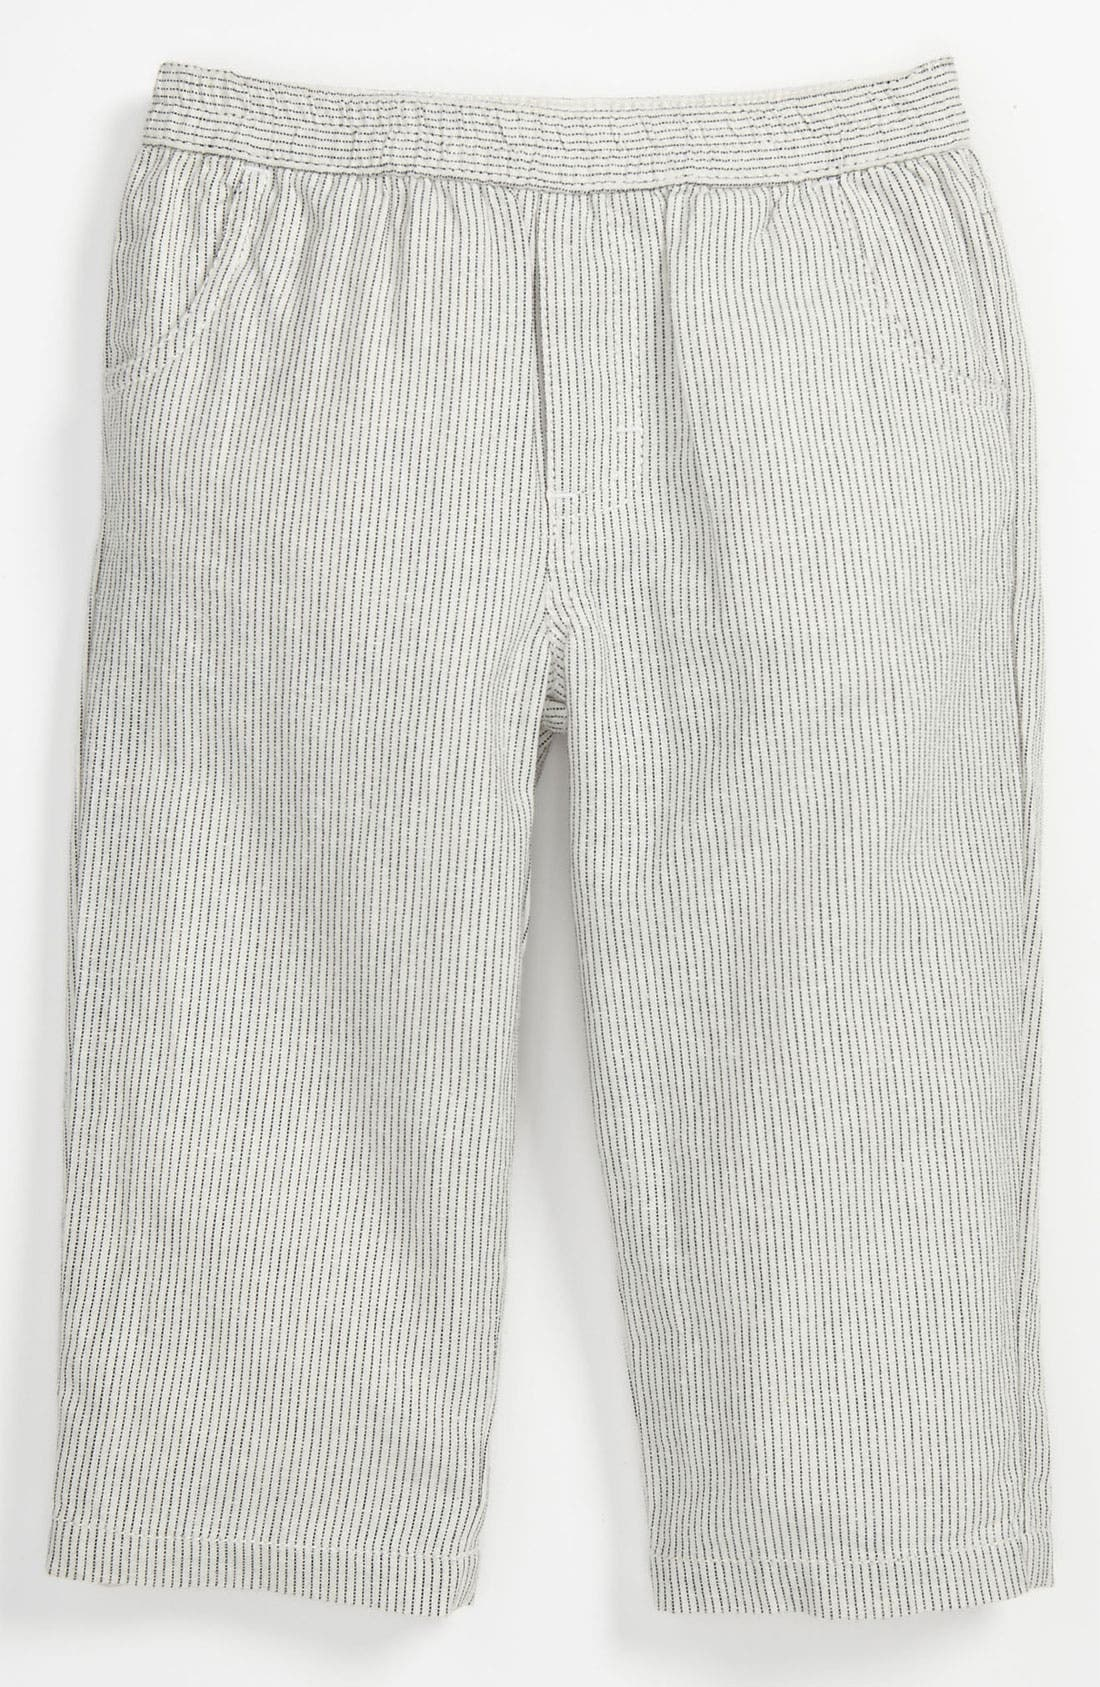 Main Image - Nordstrom Baby 'Spring' Woven Pants (Baby)